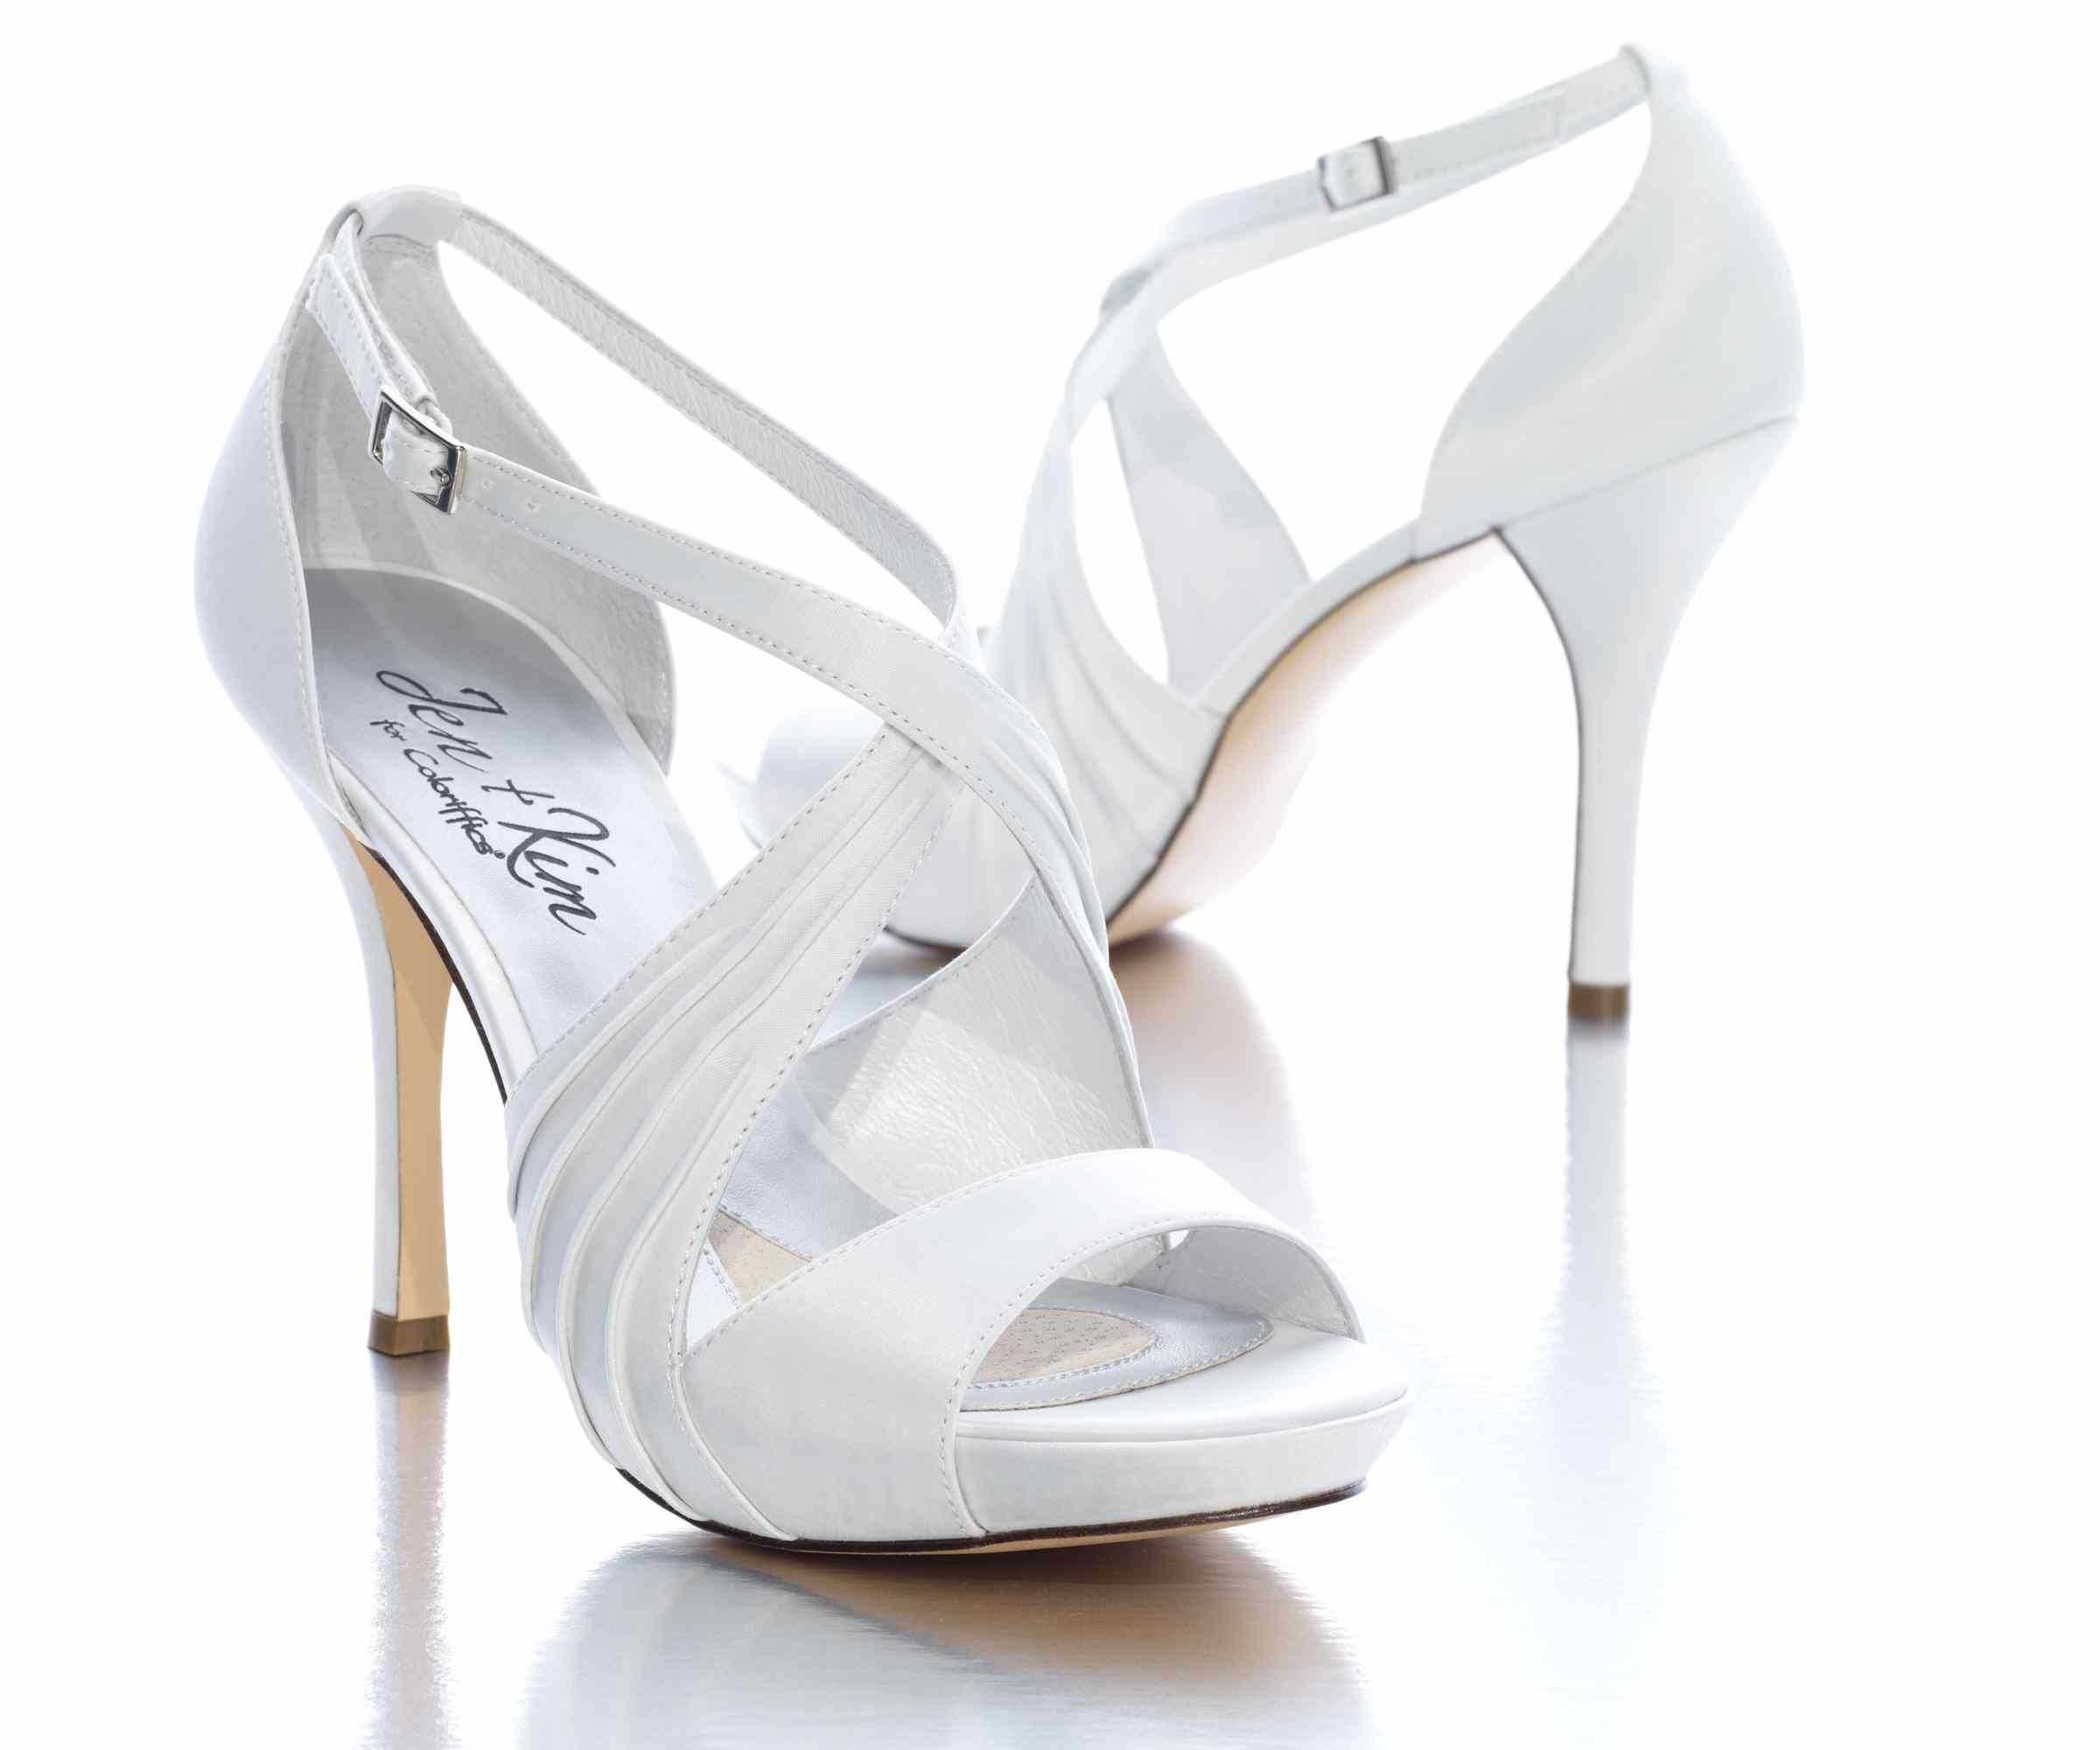 17 Best images about Wedding Shoes on Pinterest | White wedding ...